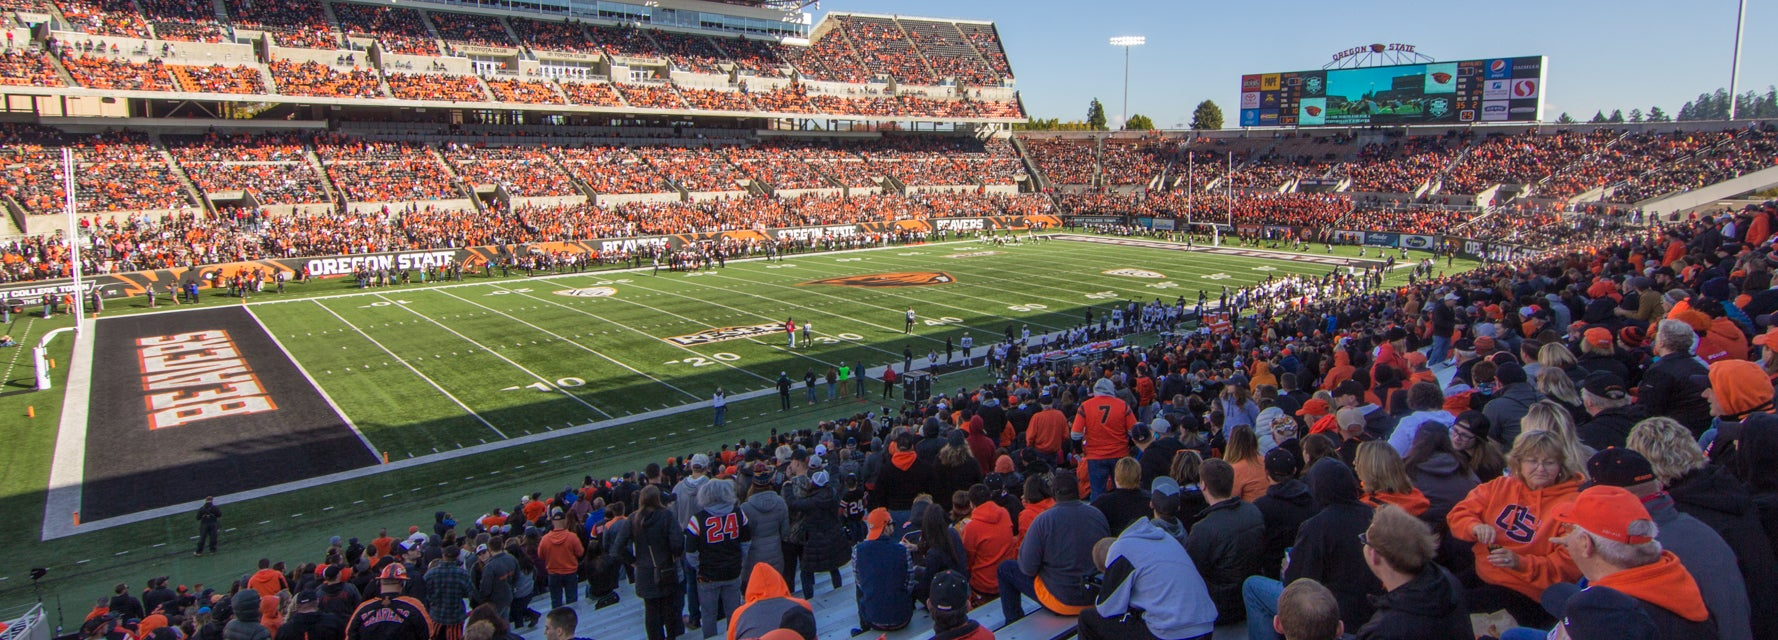 Oregon State Football Tickets